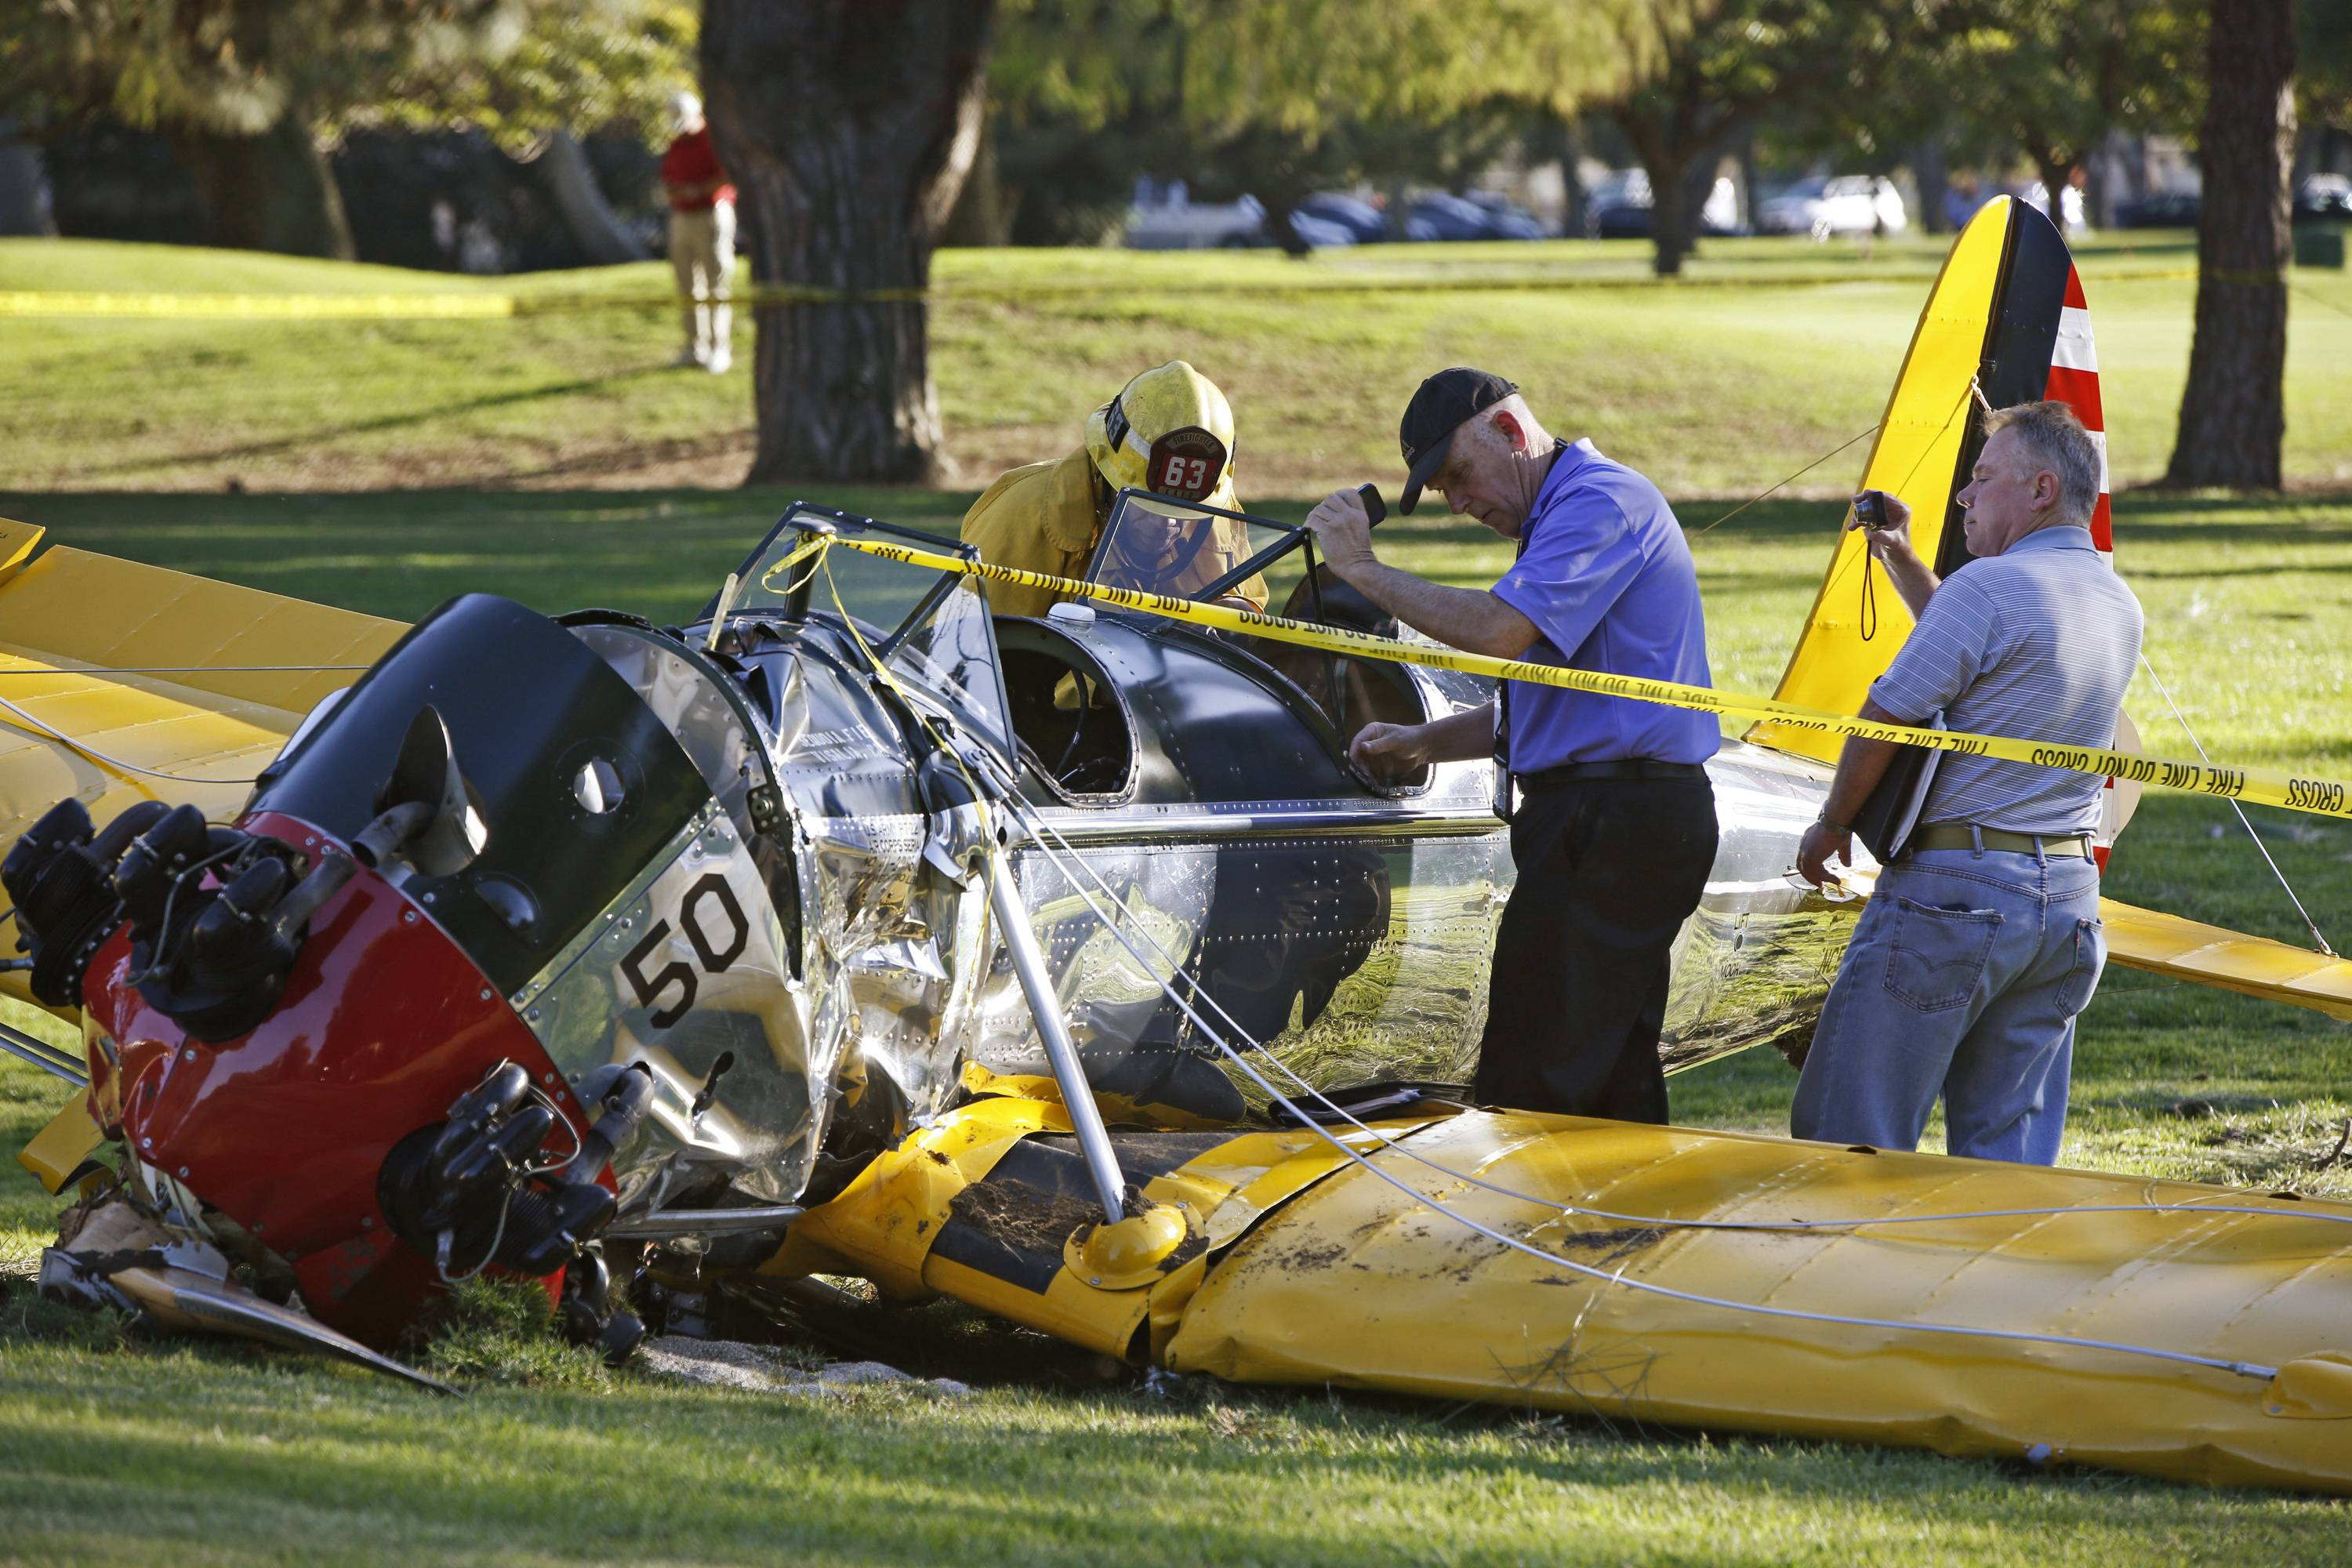 Harrison Ford's love of flight marked by mishaps, service to others